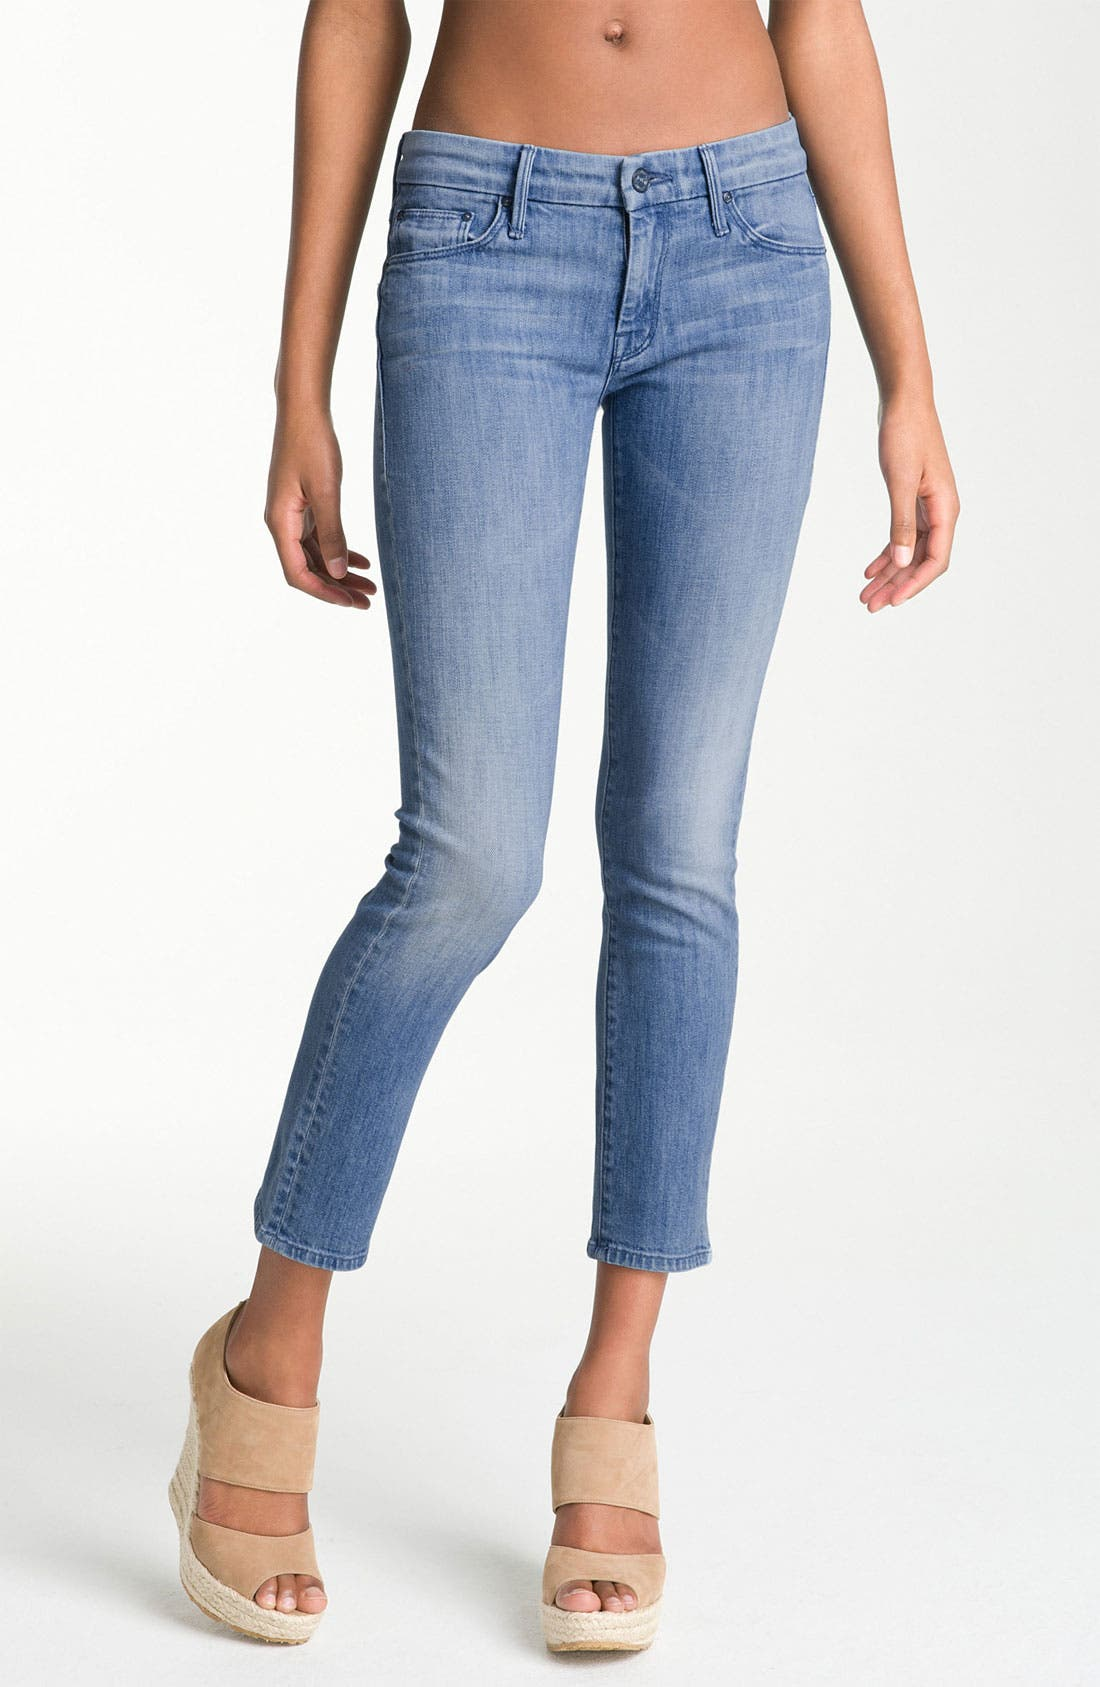 Alternate Image 1 Selected - MOTHER 'The Cropped Looker' Stretch Skinny Jeans (French Quarter)